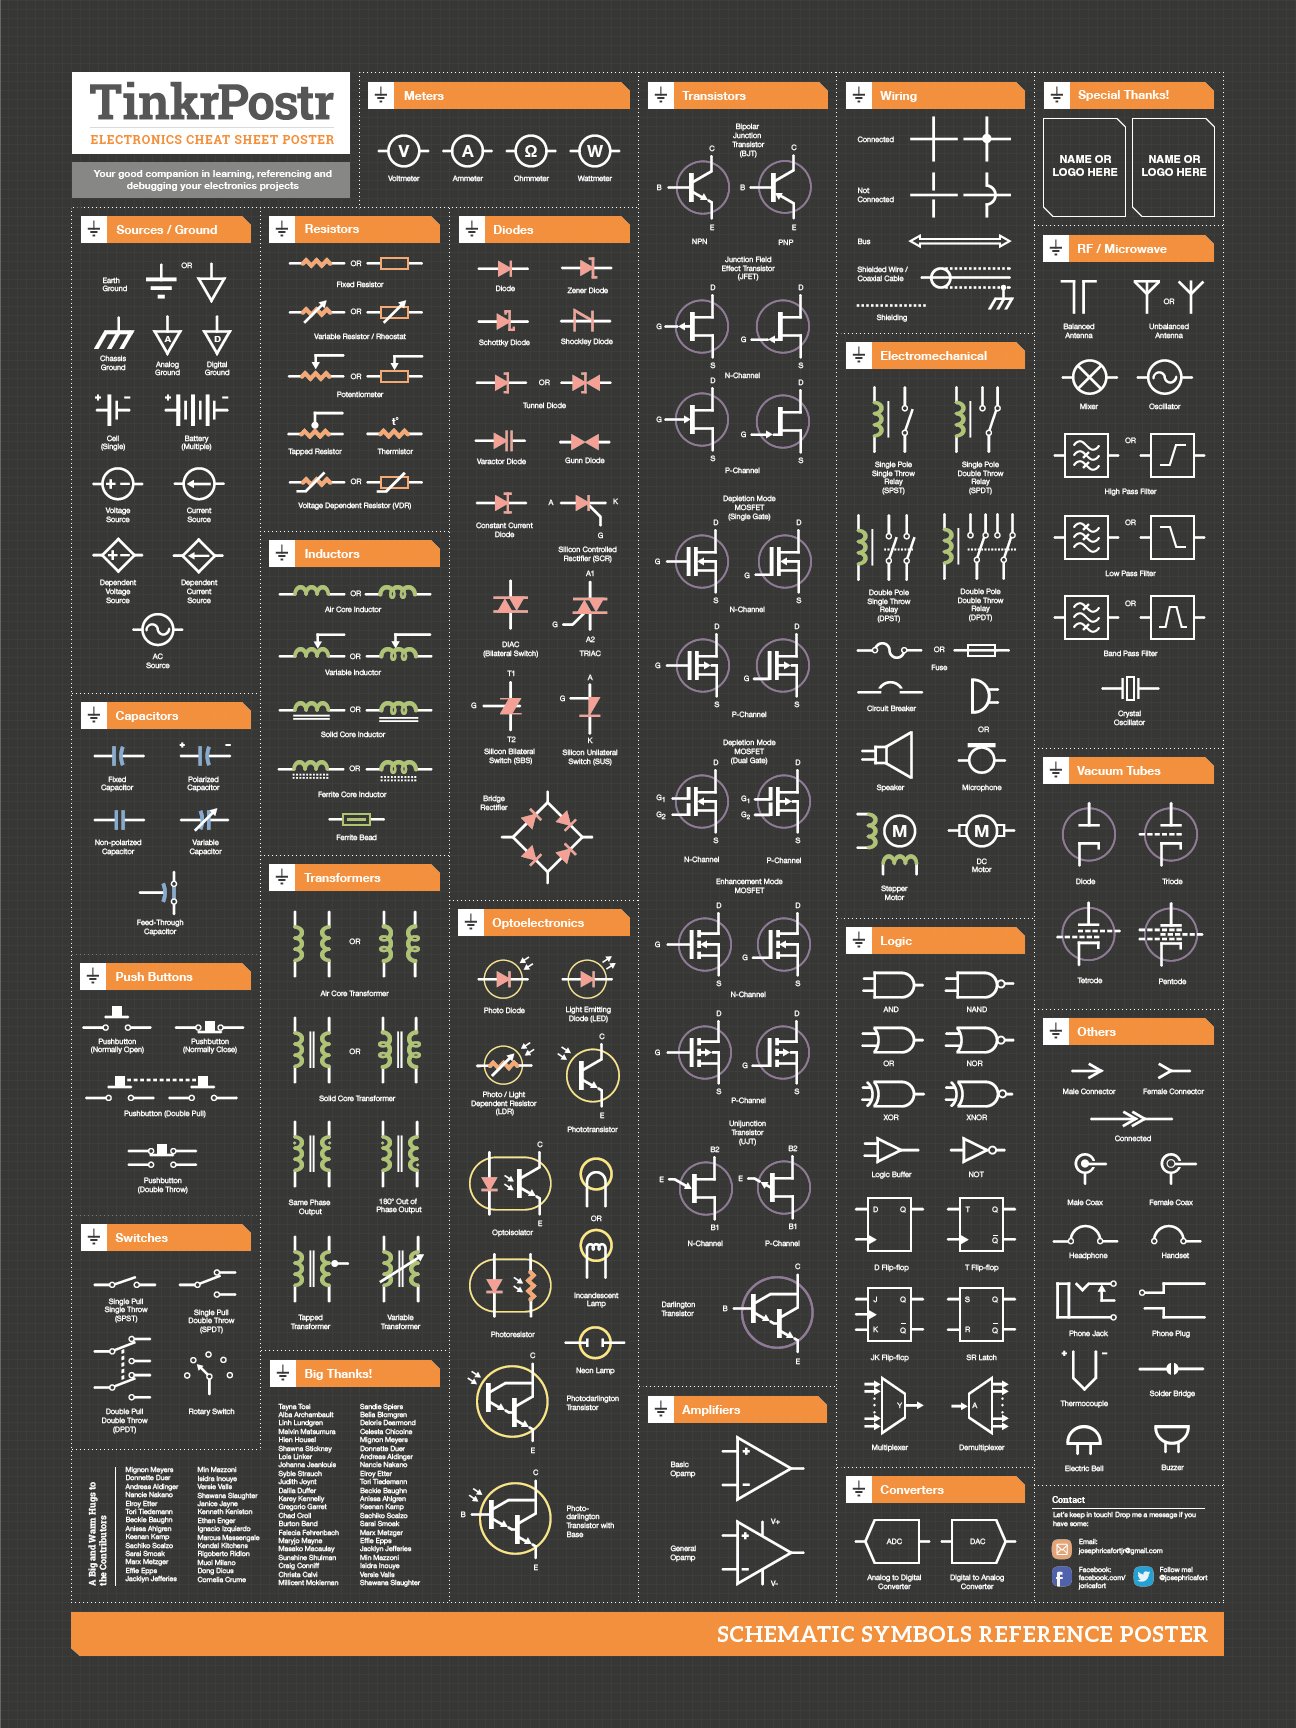 Collectible Cheat Sheet Posters In Learning Electronics And Building Electronic Ballast Principle Circuit Basiccircuit Diagram Projects Crowdfunding Is A Democratic Way To Support The Fundraising Needs Of Your